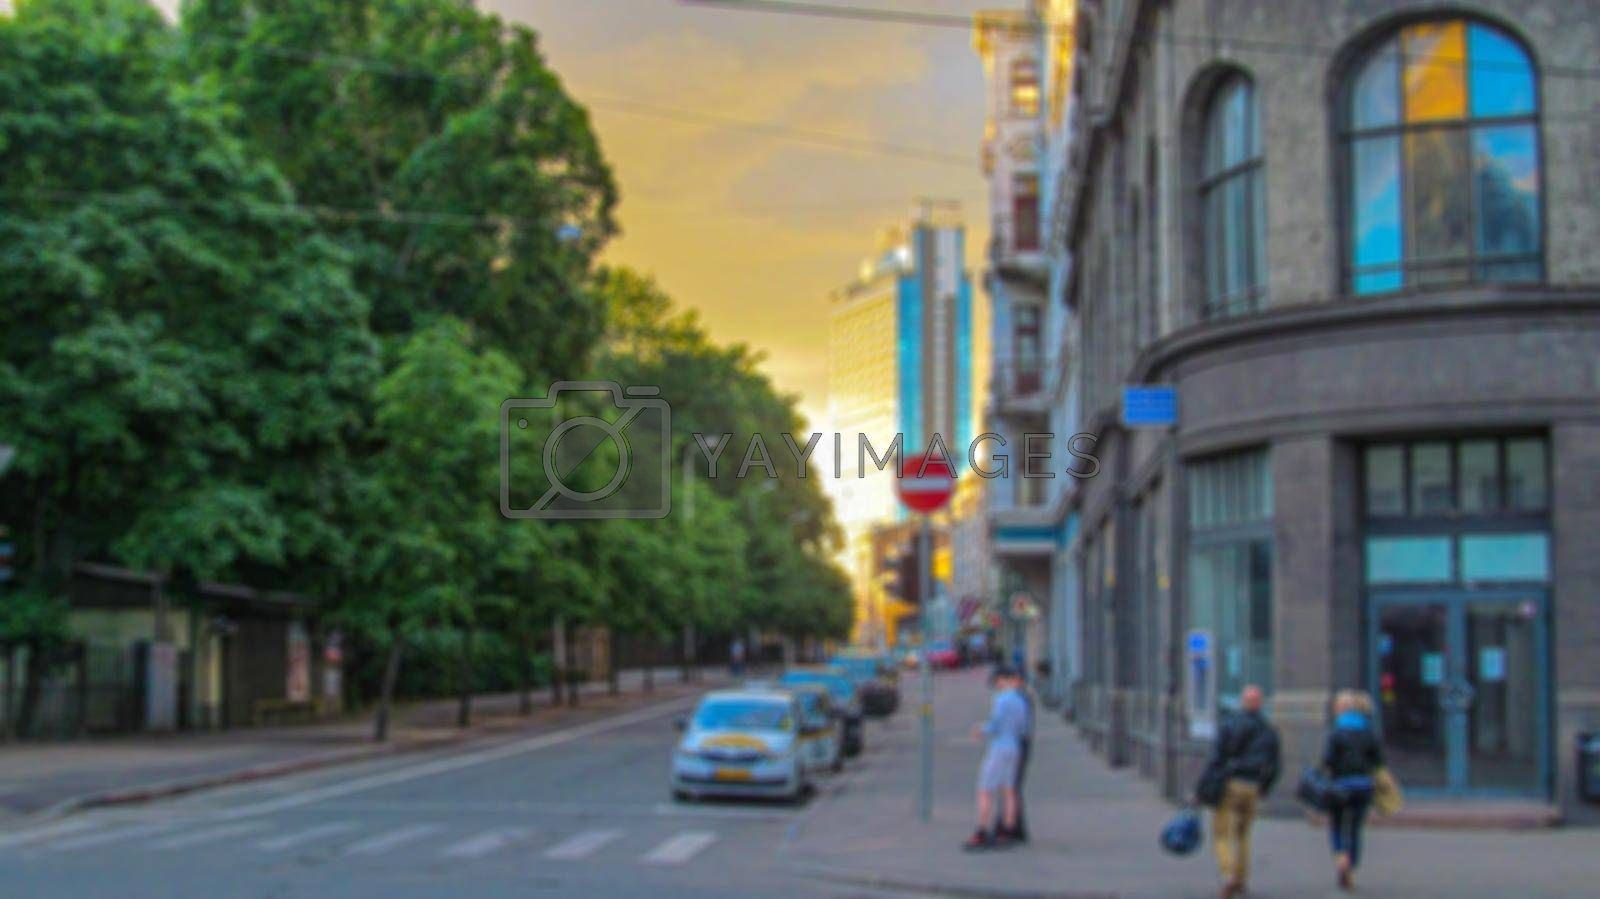 Blurred background of a city street. Urban landscape. Creative theme with blur and bokeh effect for backgrounds, posters and screensavers.